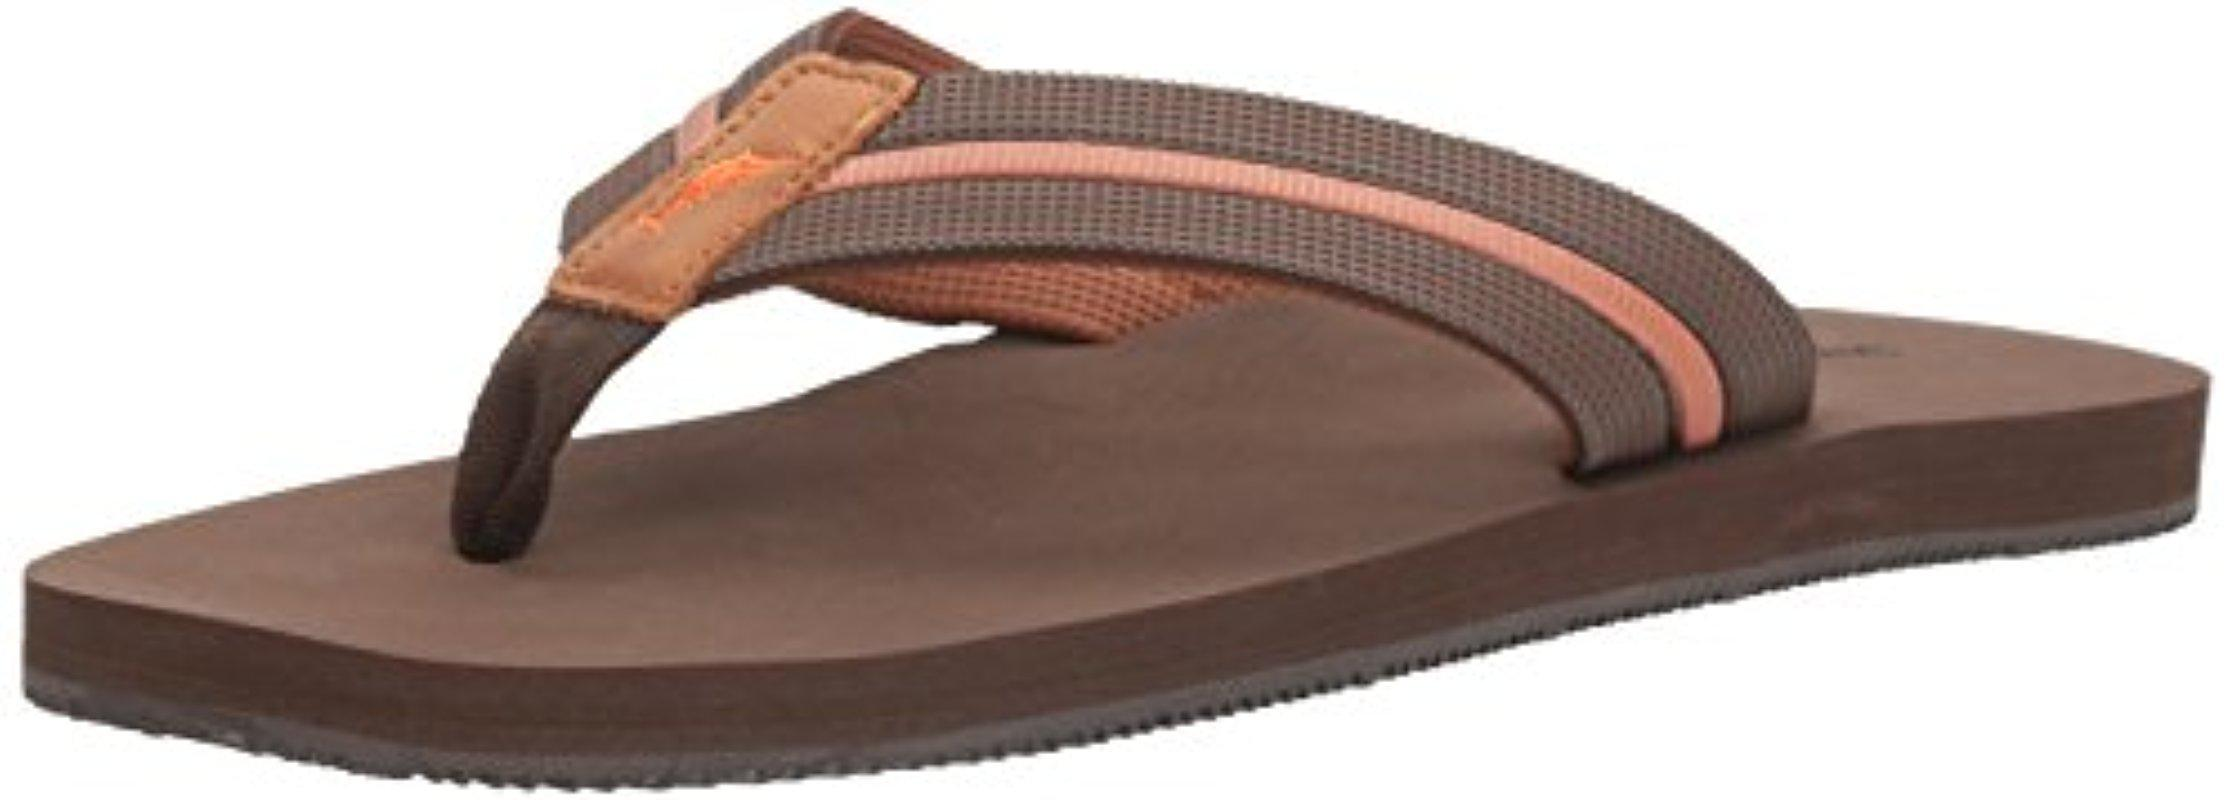 18cdaee0681e3 Lyst - Tommy Bahama Taheeti (turbulence 2) Men s Shoes in Brown for ...